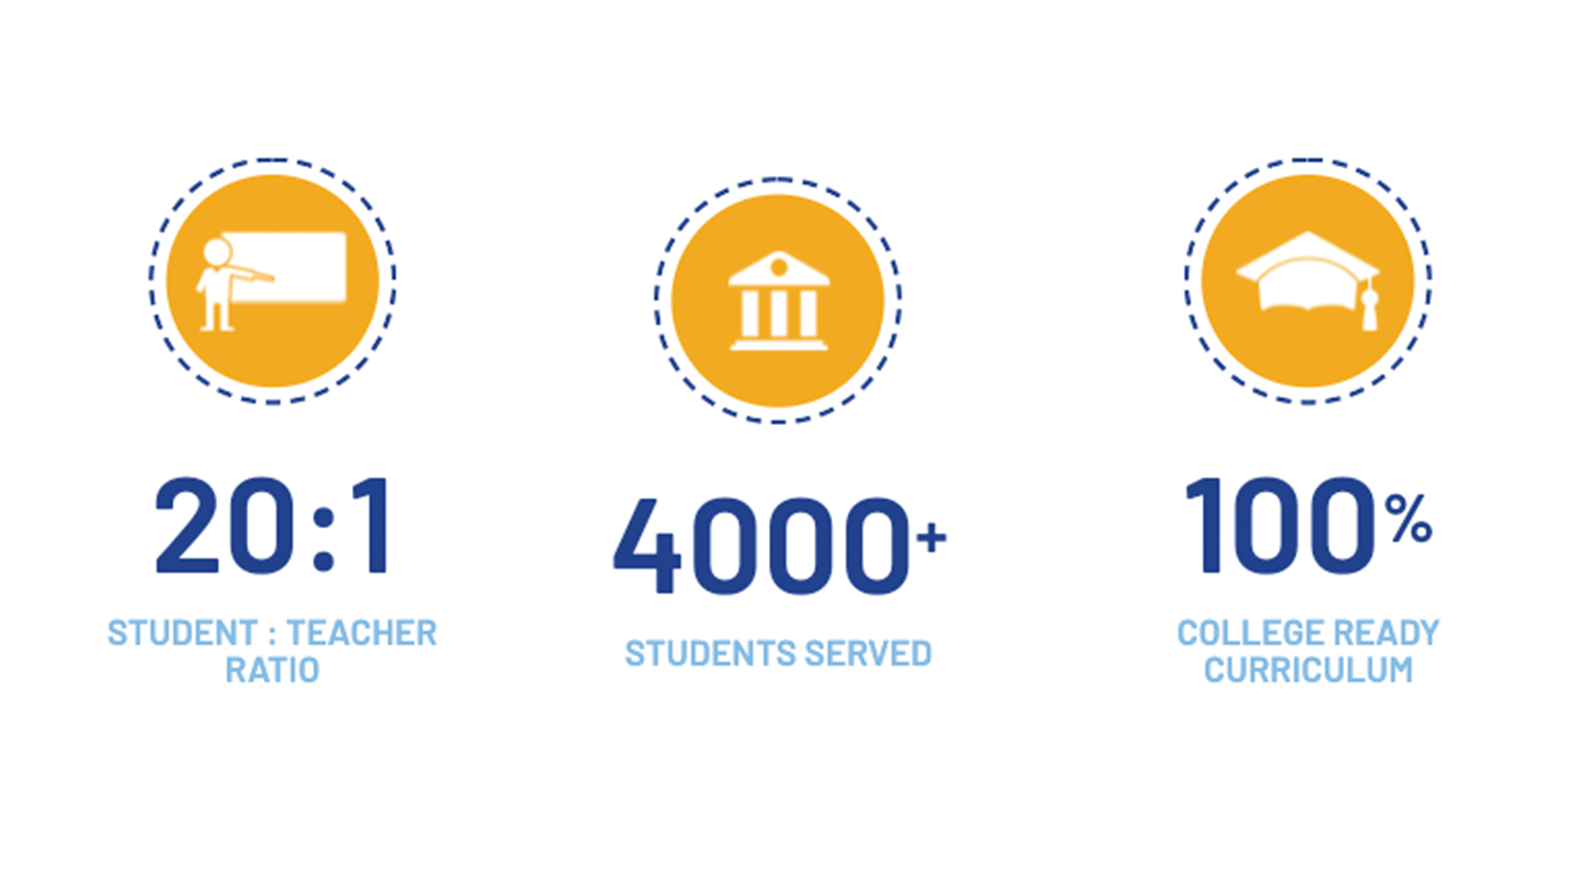 20:1 Student to Teacher Ratio, 4000+ Students Served, 100% College Ready Curriculum